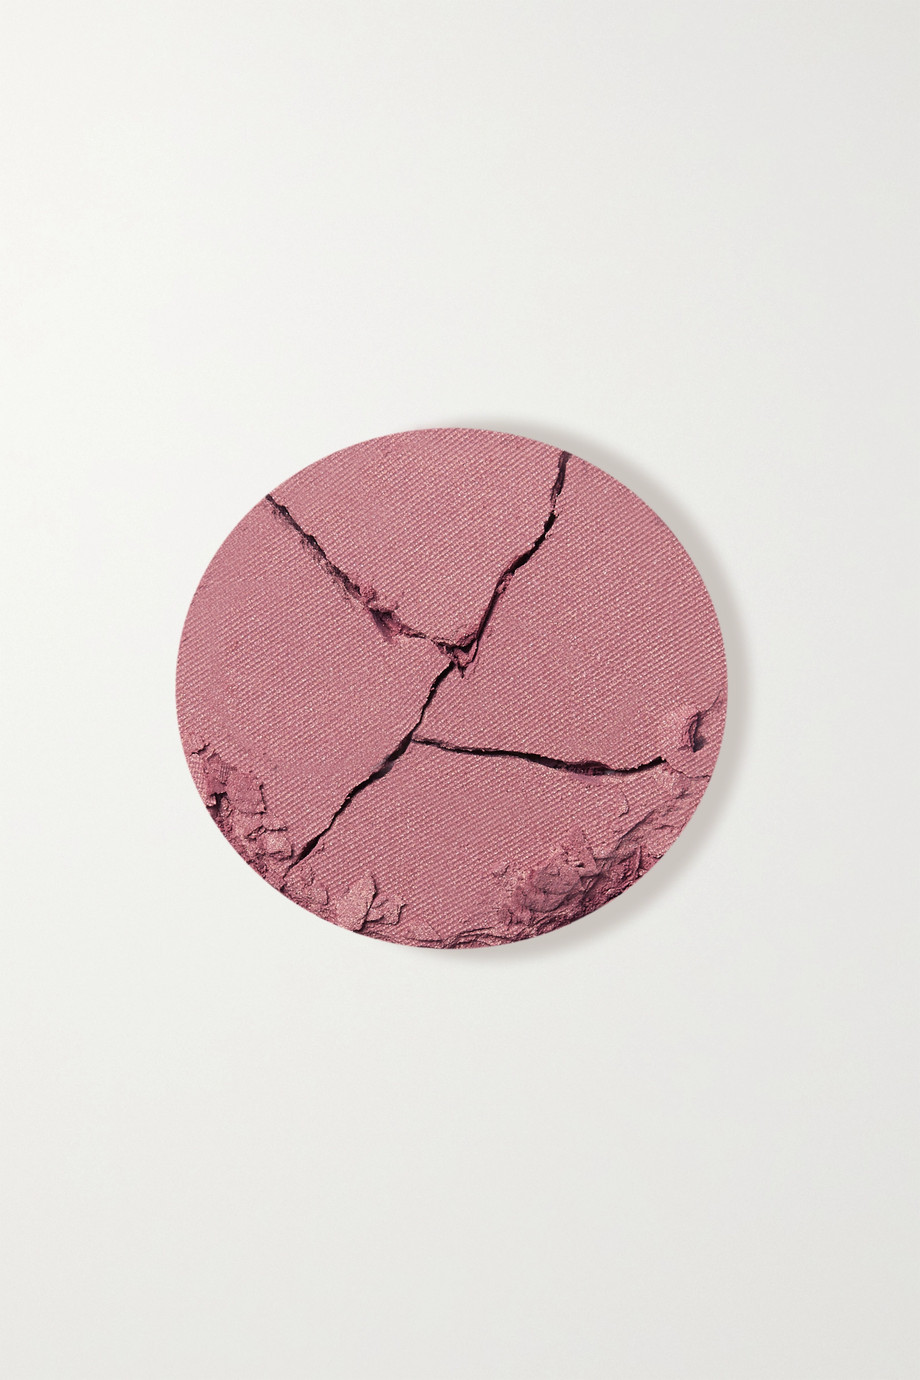 VAPOUR BEAUTY Blush Powder - Instinct